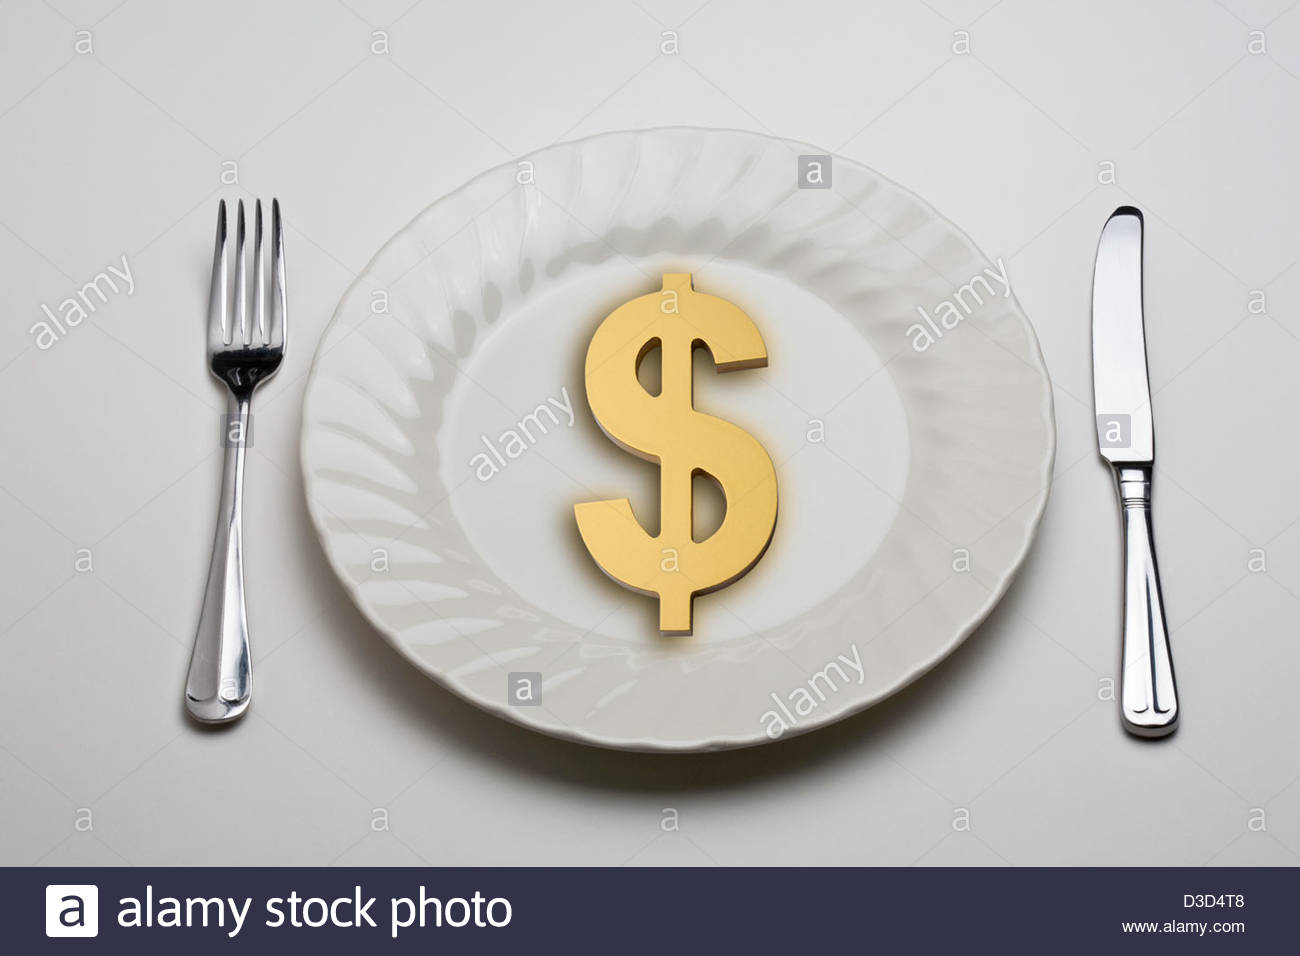 Golden dollar symbol on a white dinner plate with a knife and fork. - Stock Image